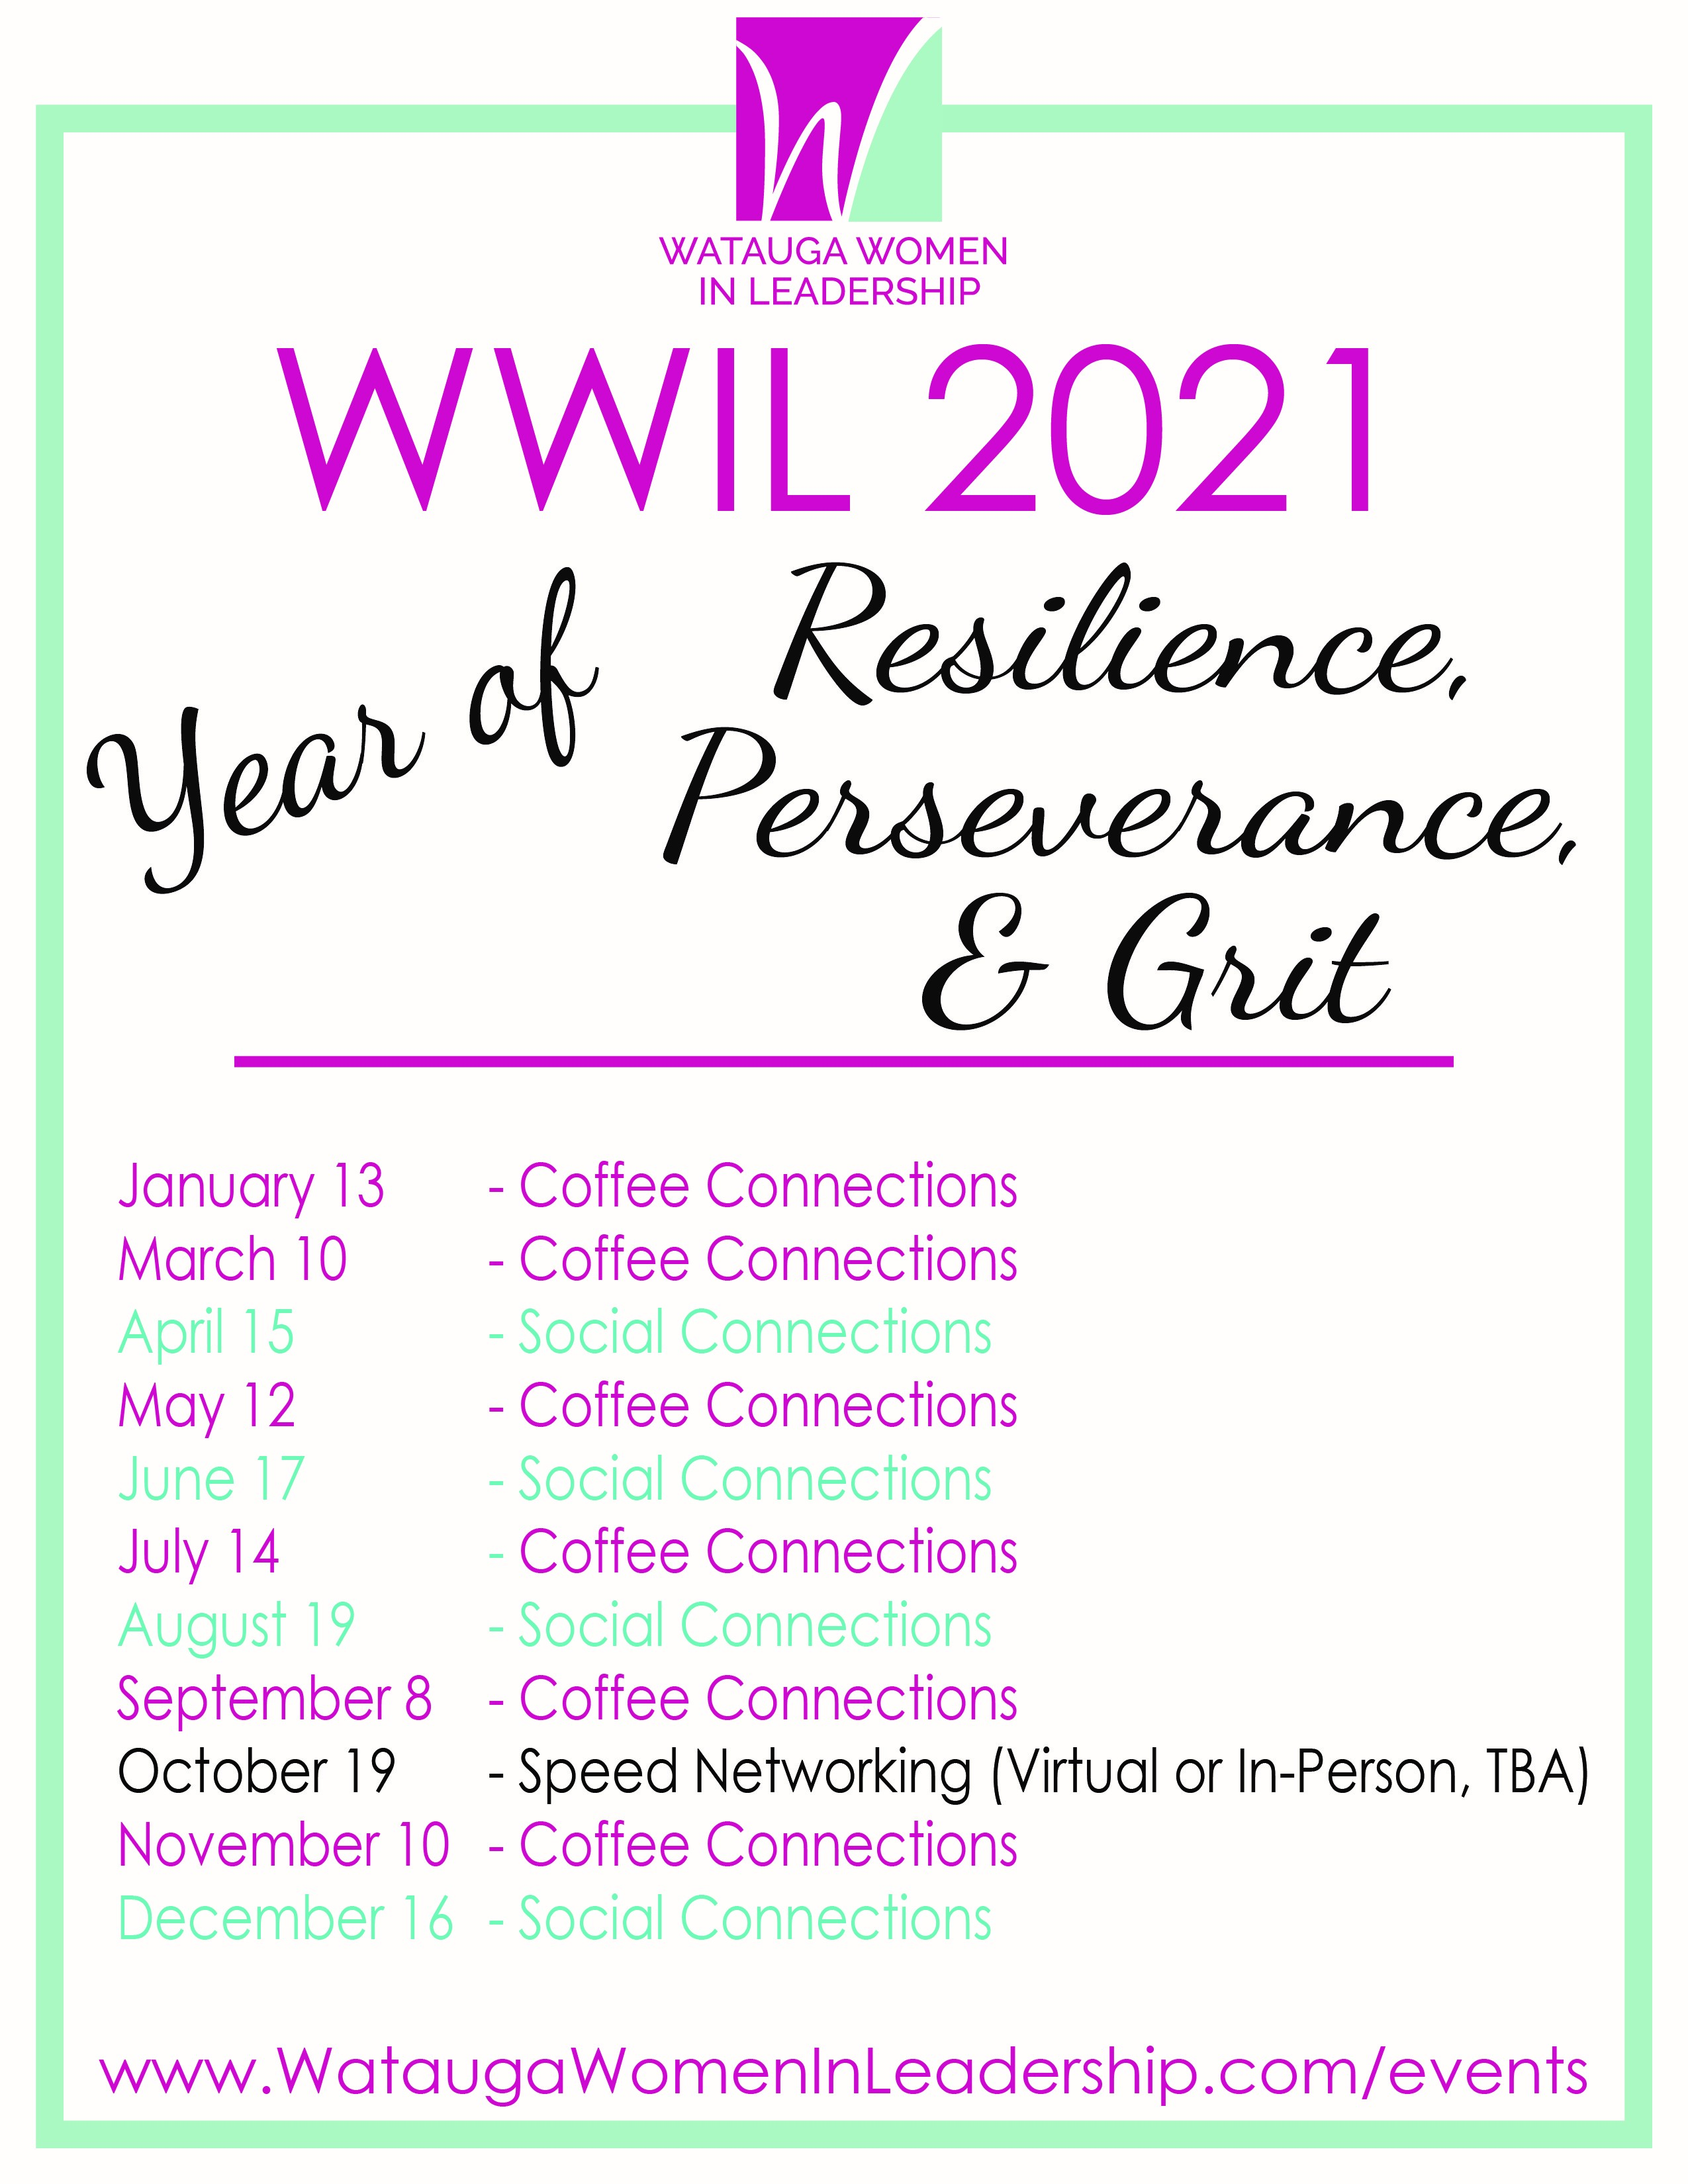 WWIL 2021 schedule of events